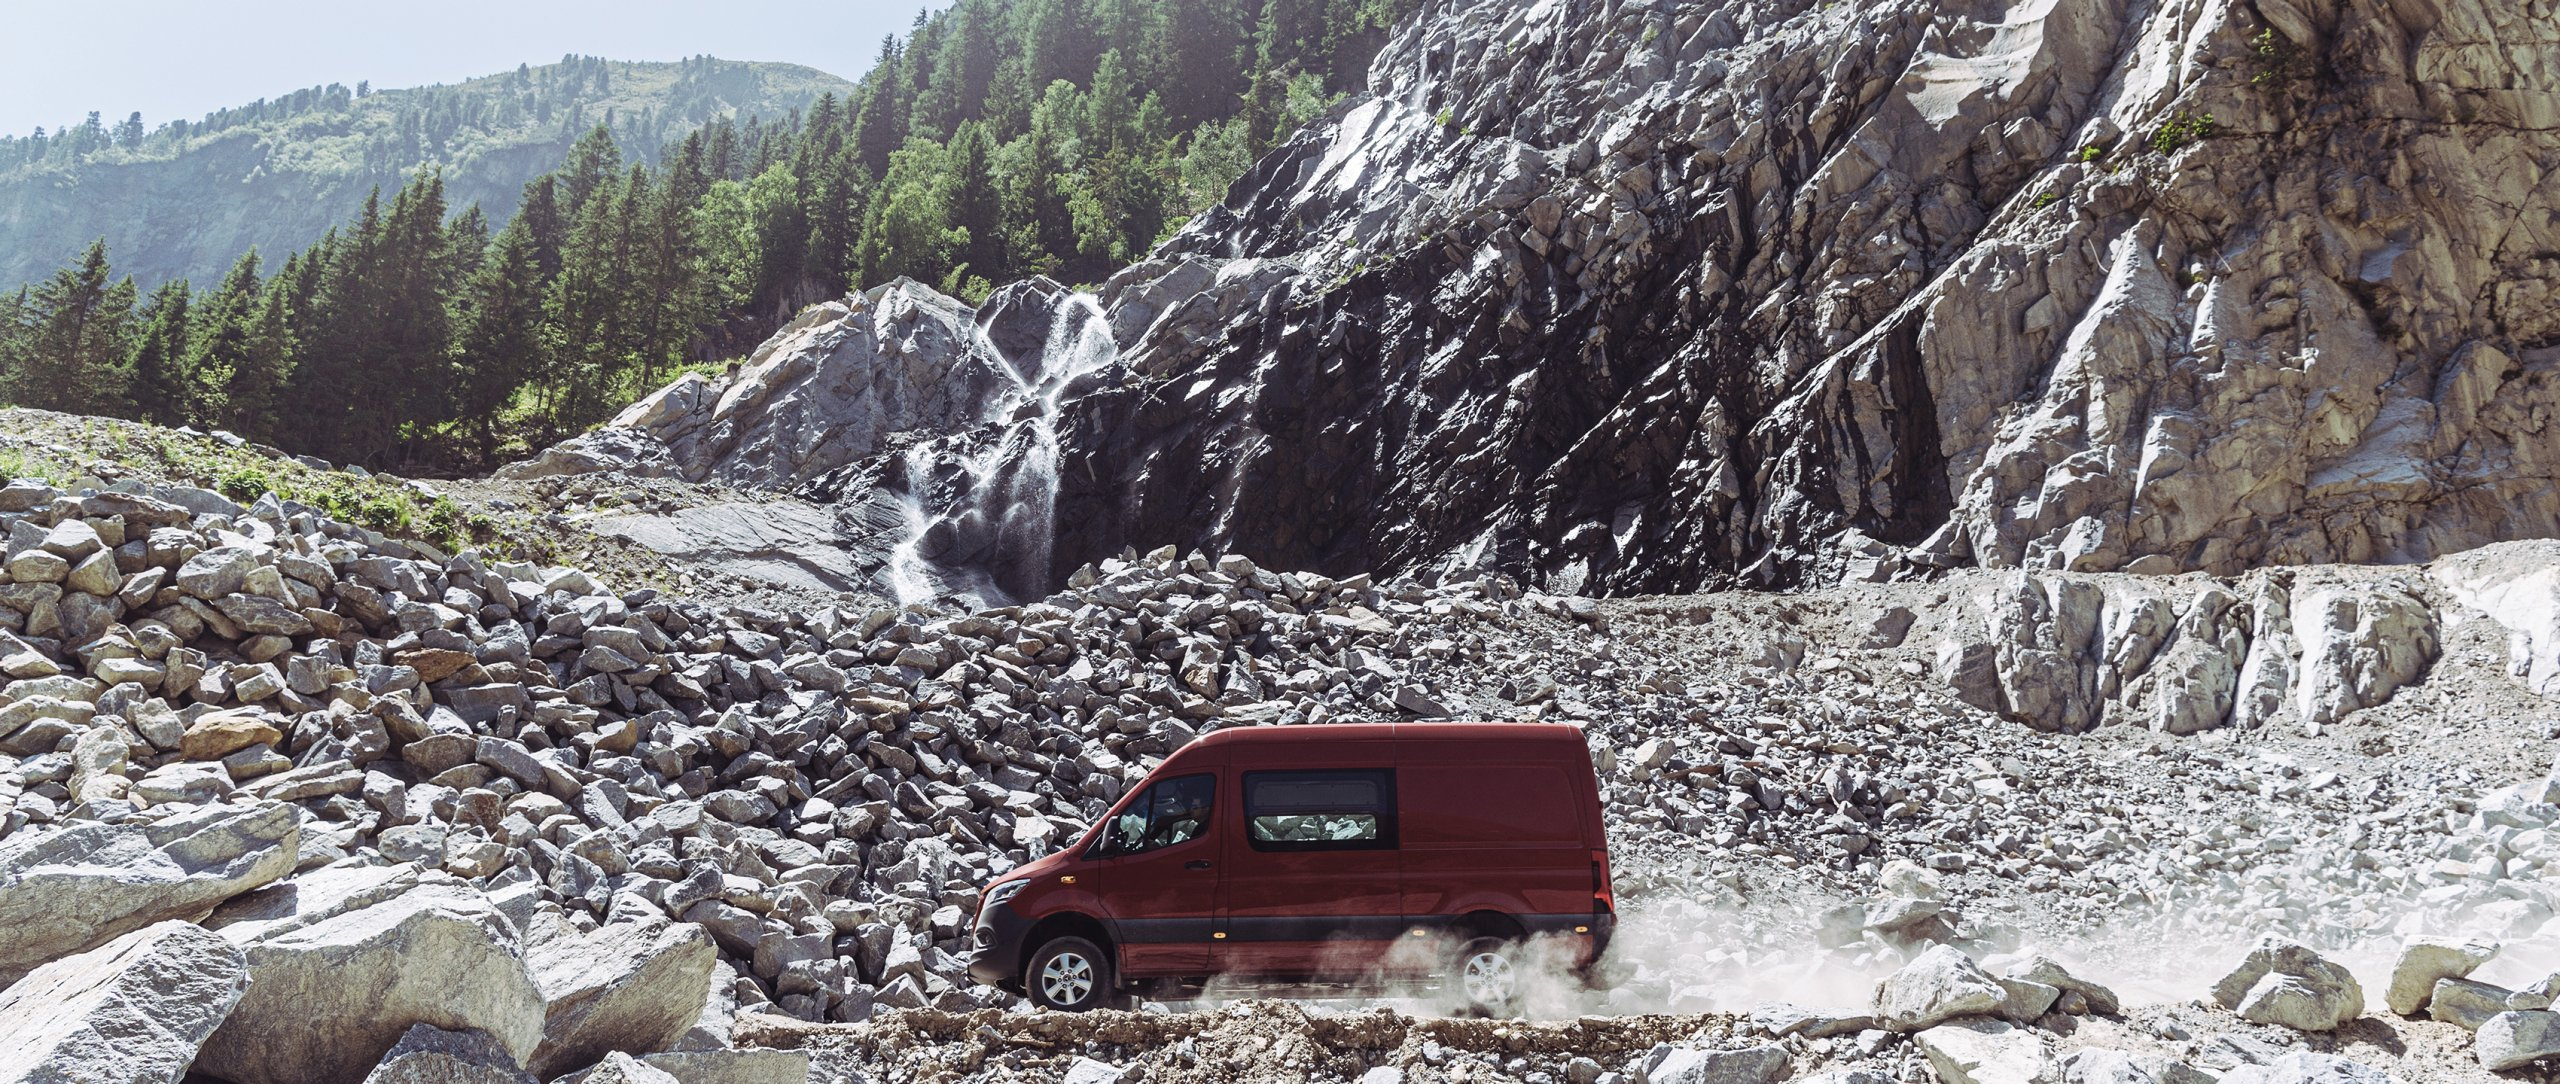 The new Mercedes-Benz Sprinter from the side in a rocky landscape